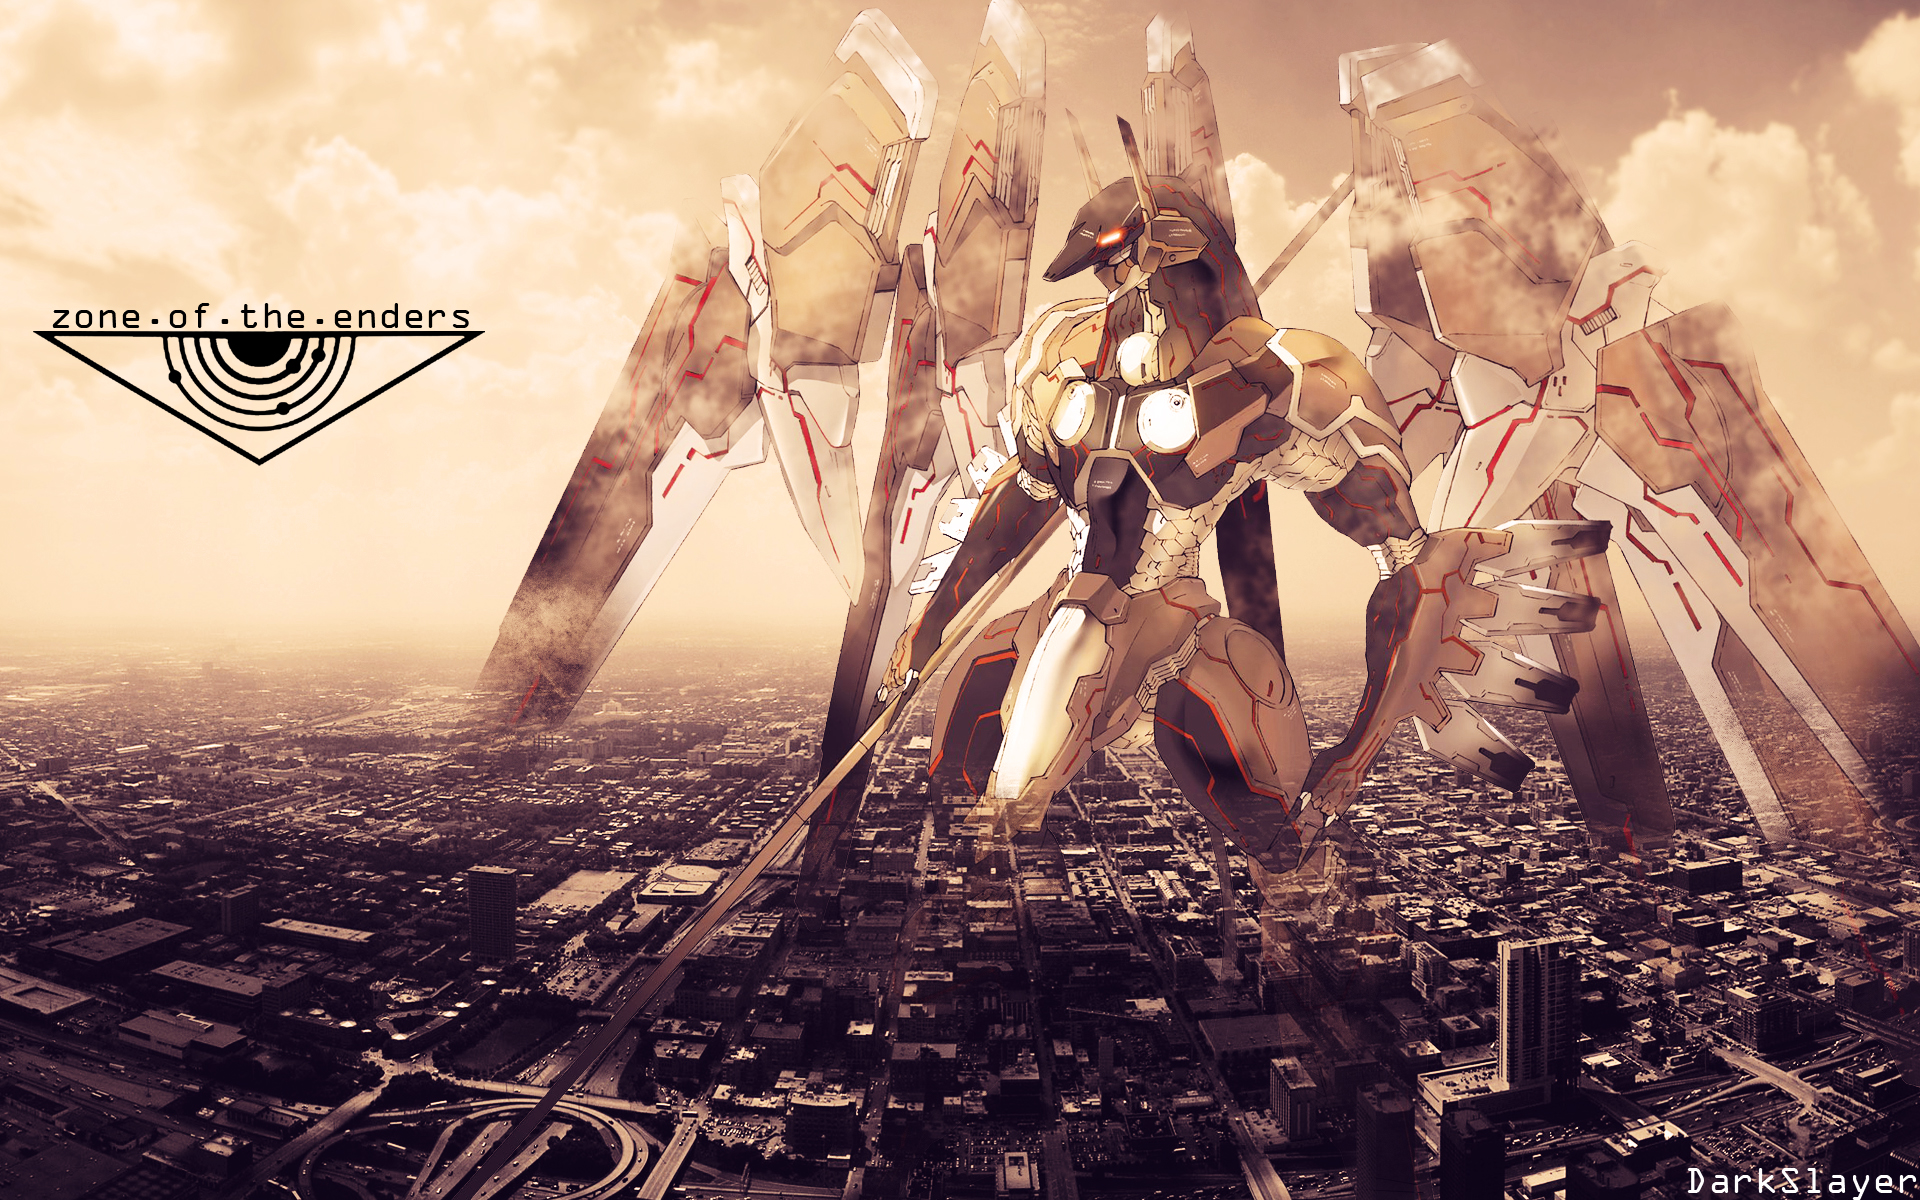 Hd wallpaper zone - Video Game Zone Of The Enders Wallpaper